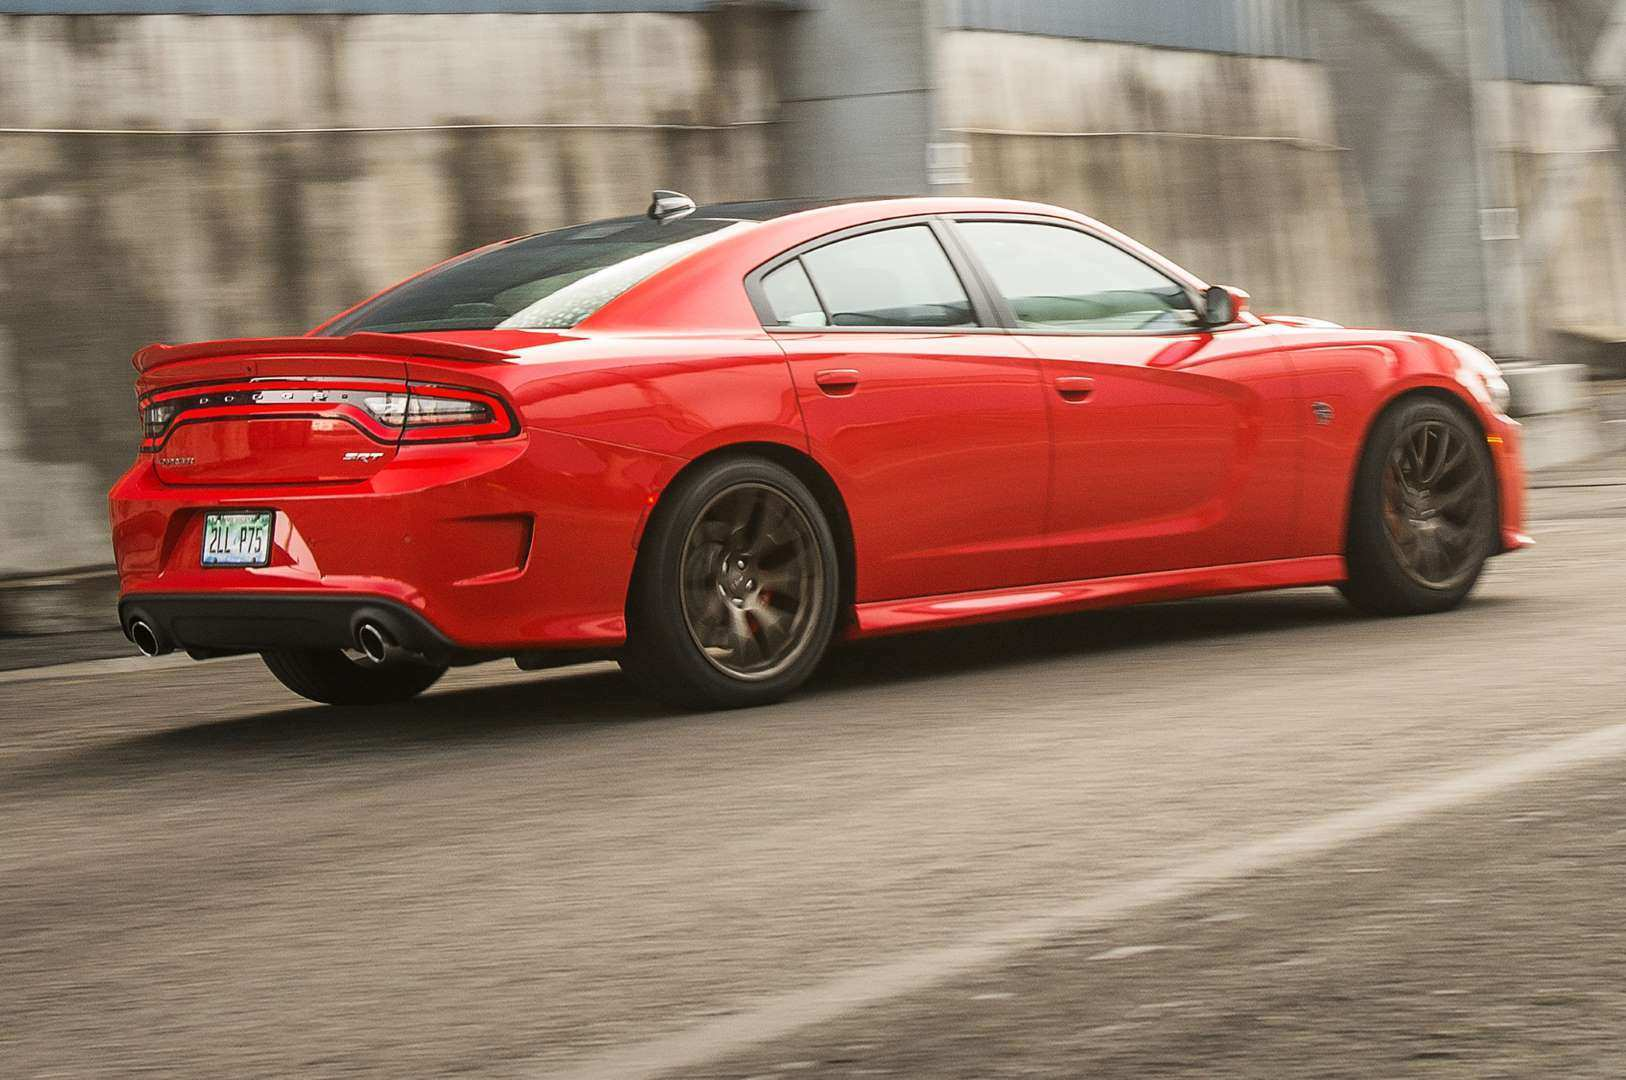 53 All New 2020 Dodge Charger Srt Picture for 2020 Dodge Charger Srt